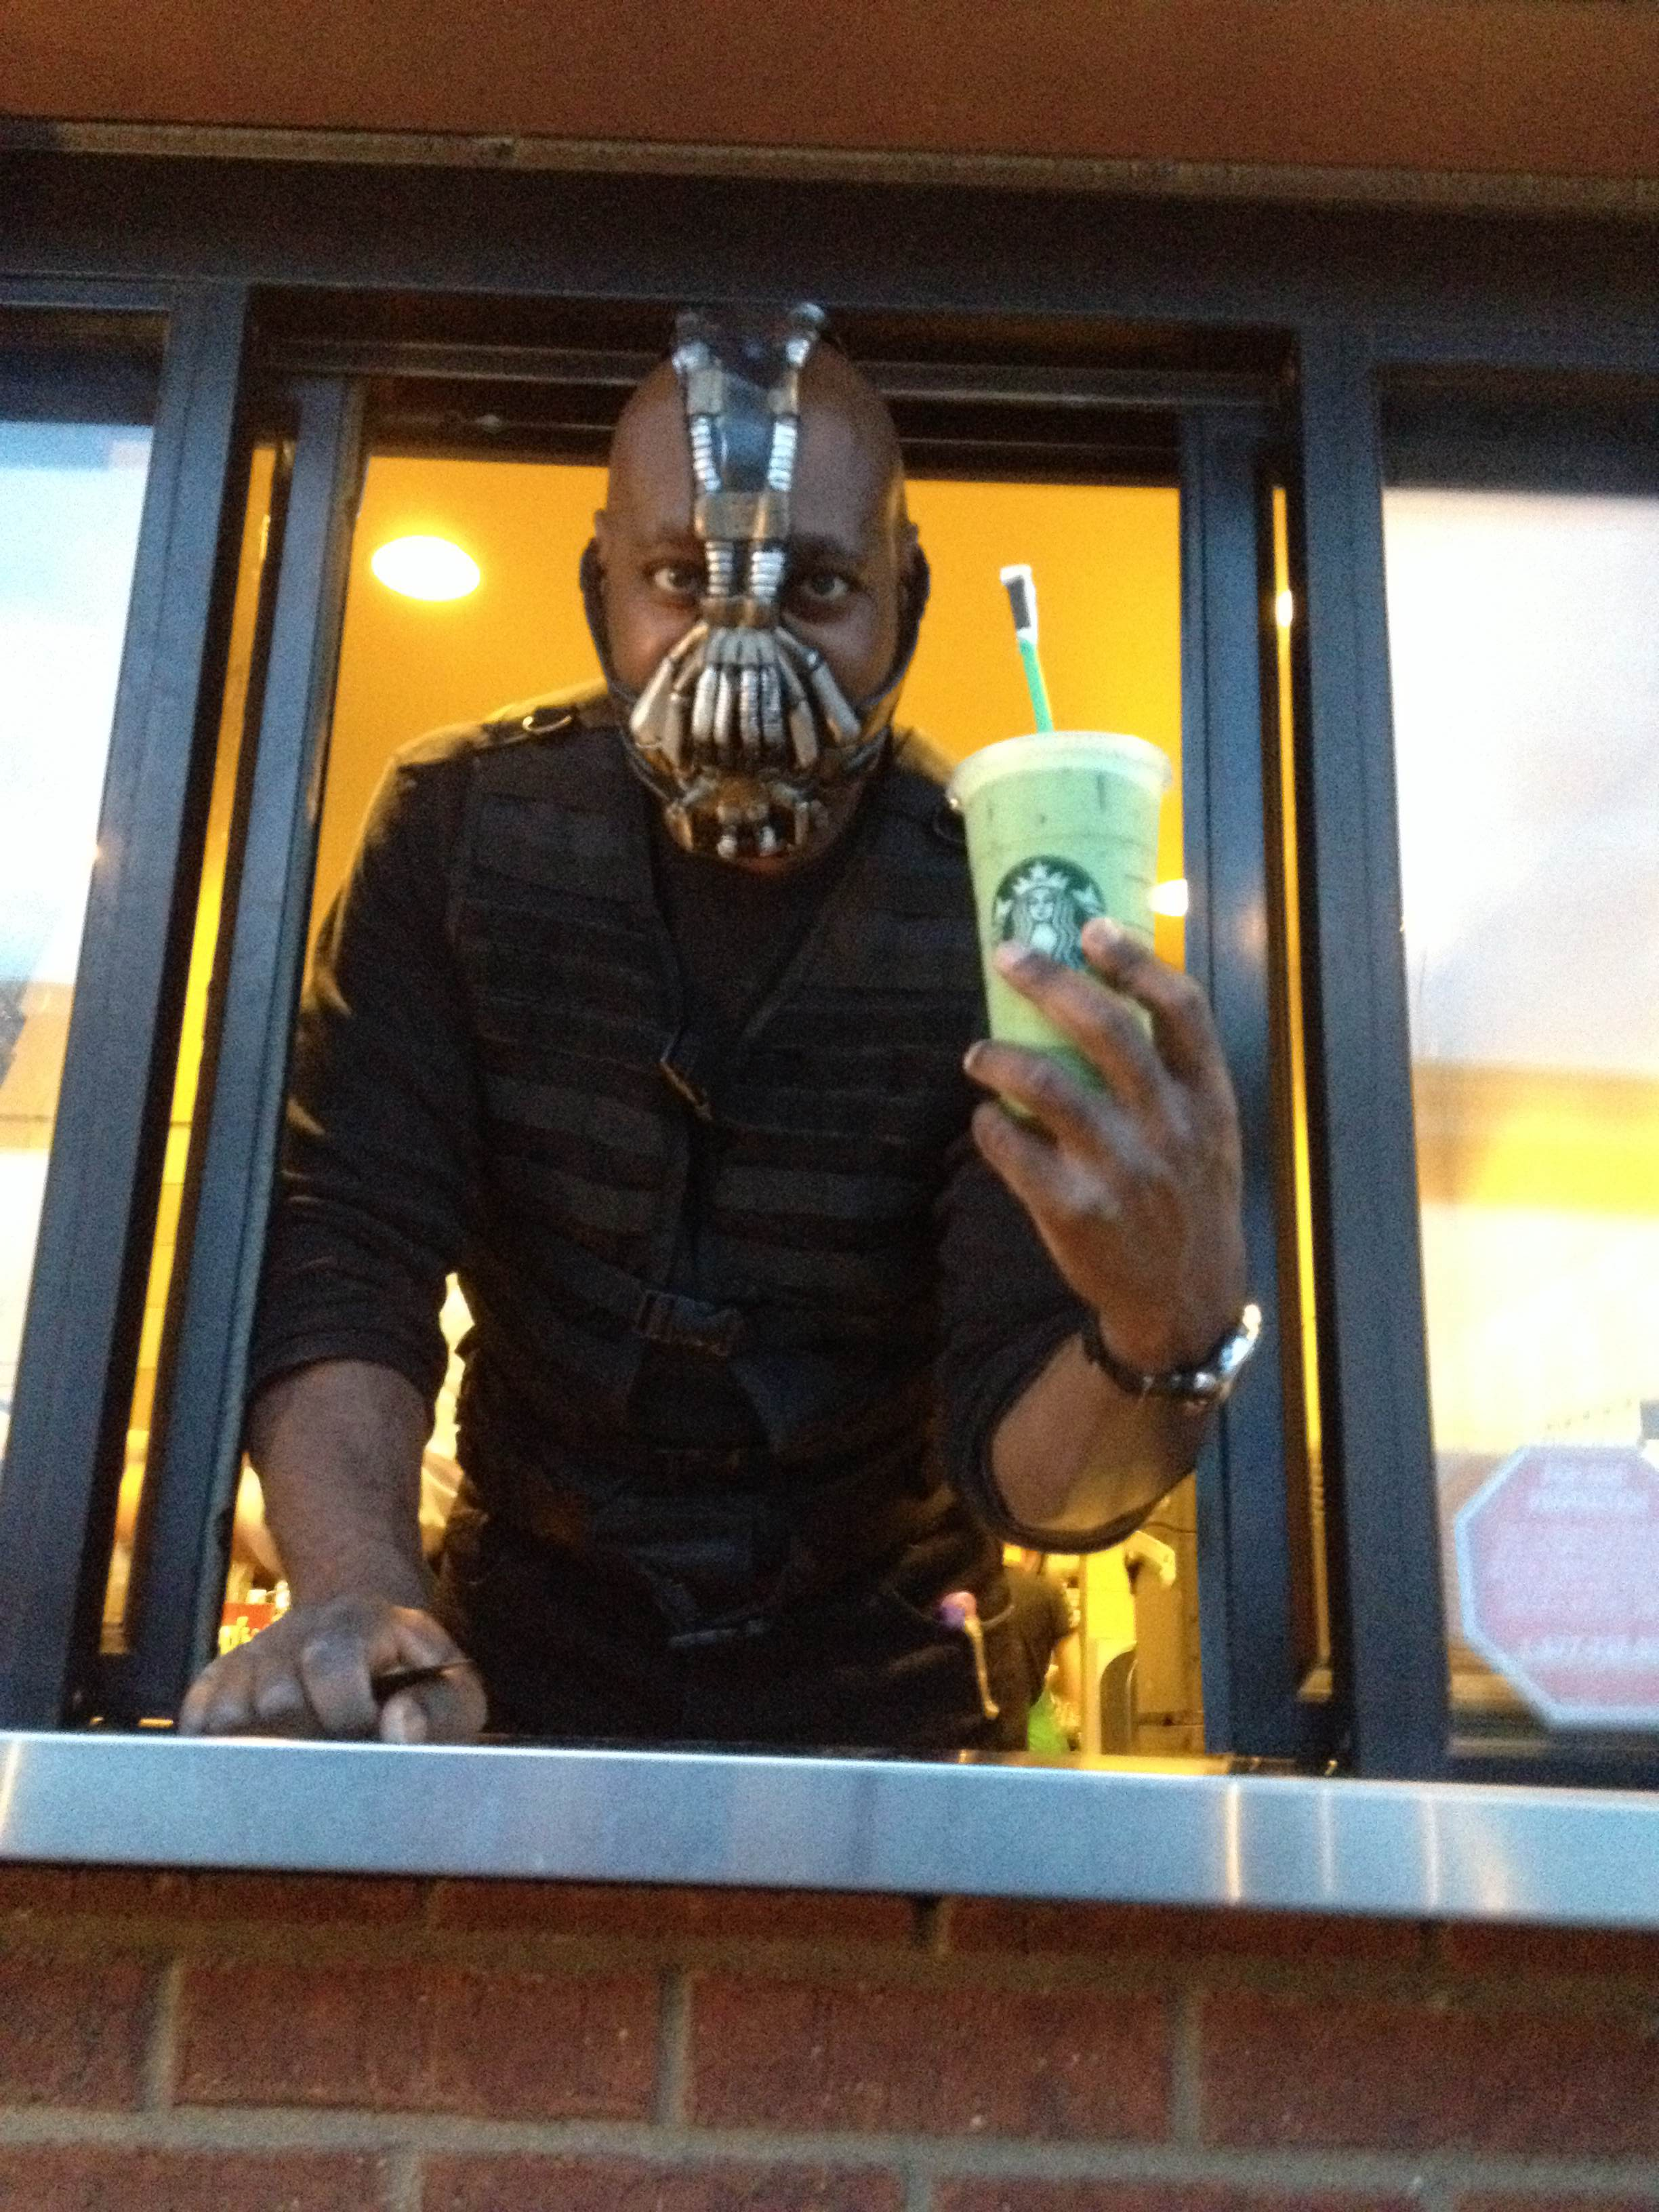 the best pictures of people wearing halloween costumes at work - Halloween Costumes Bane